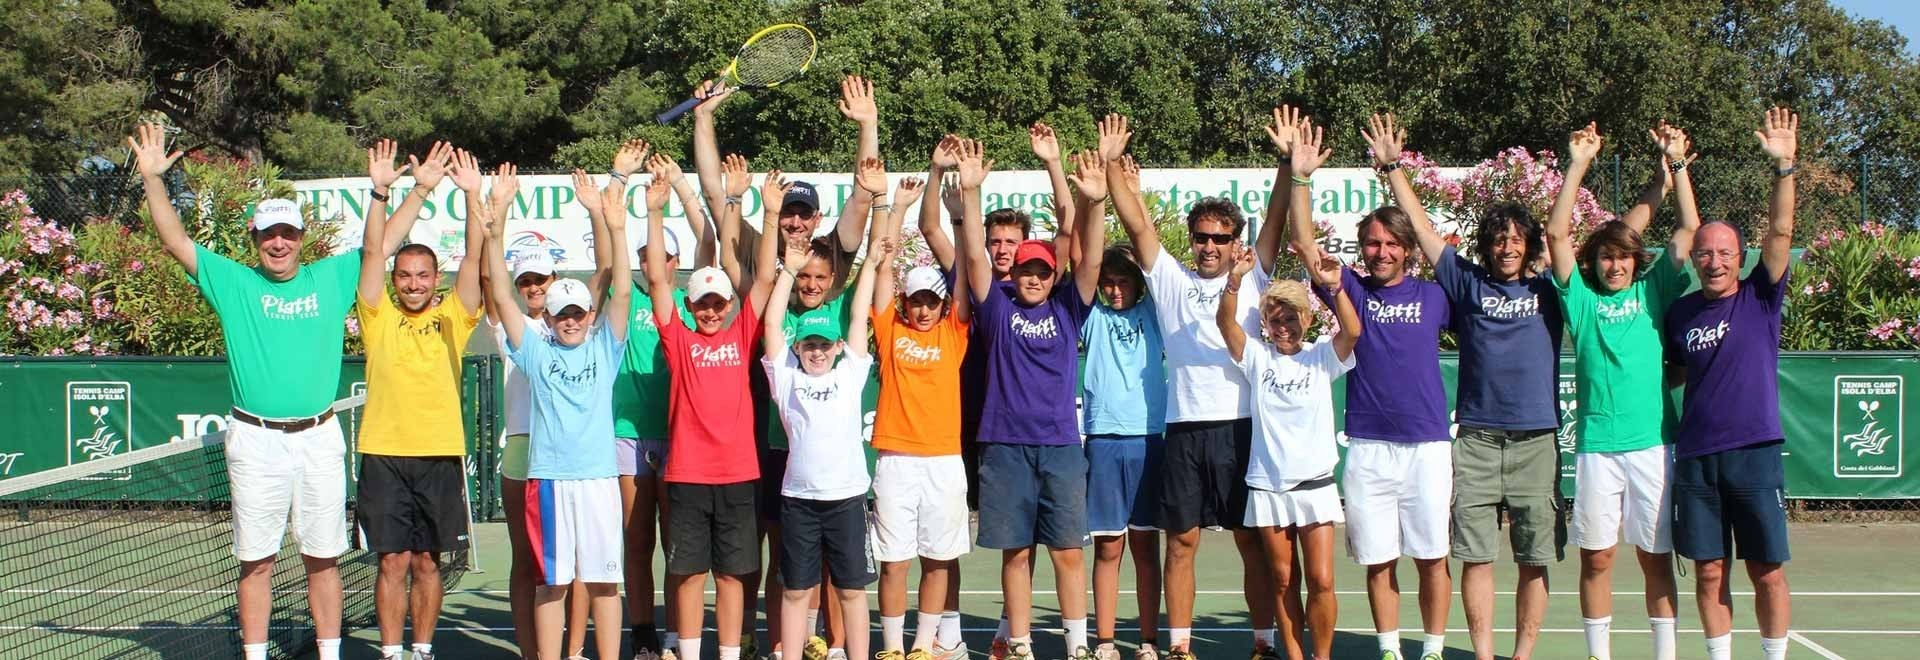 Tennis camps - Explore our Tennis Camps and Holidays